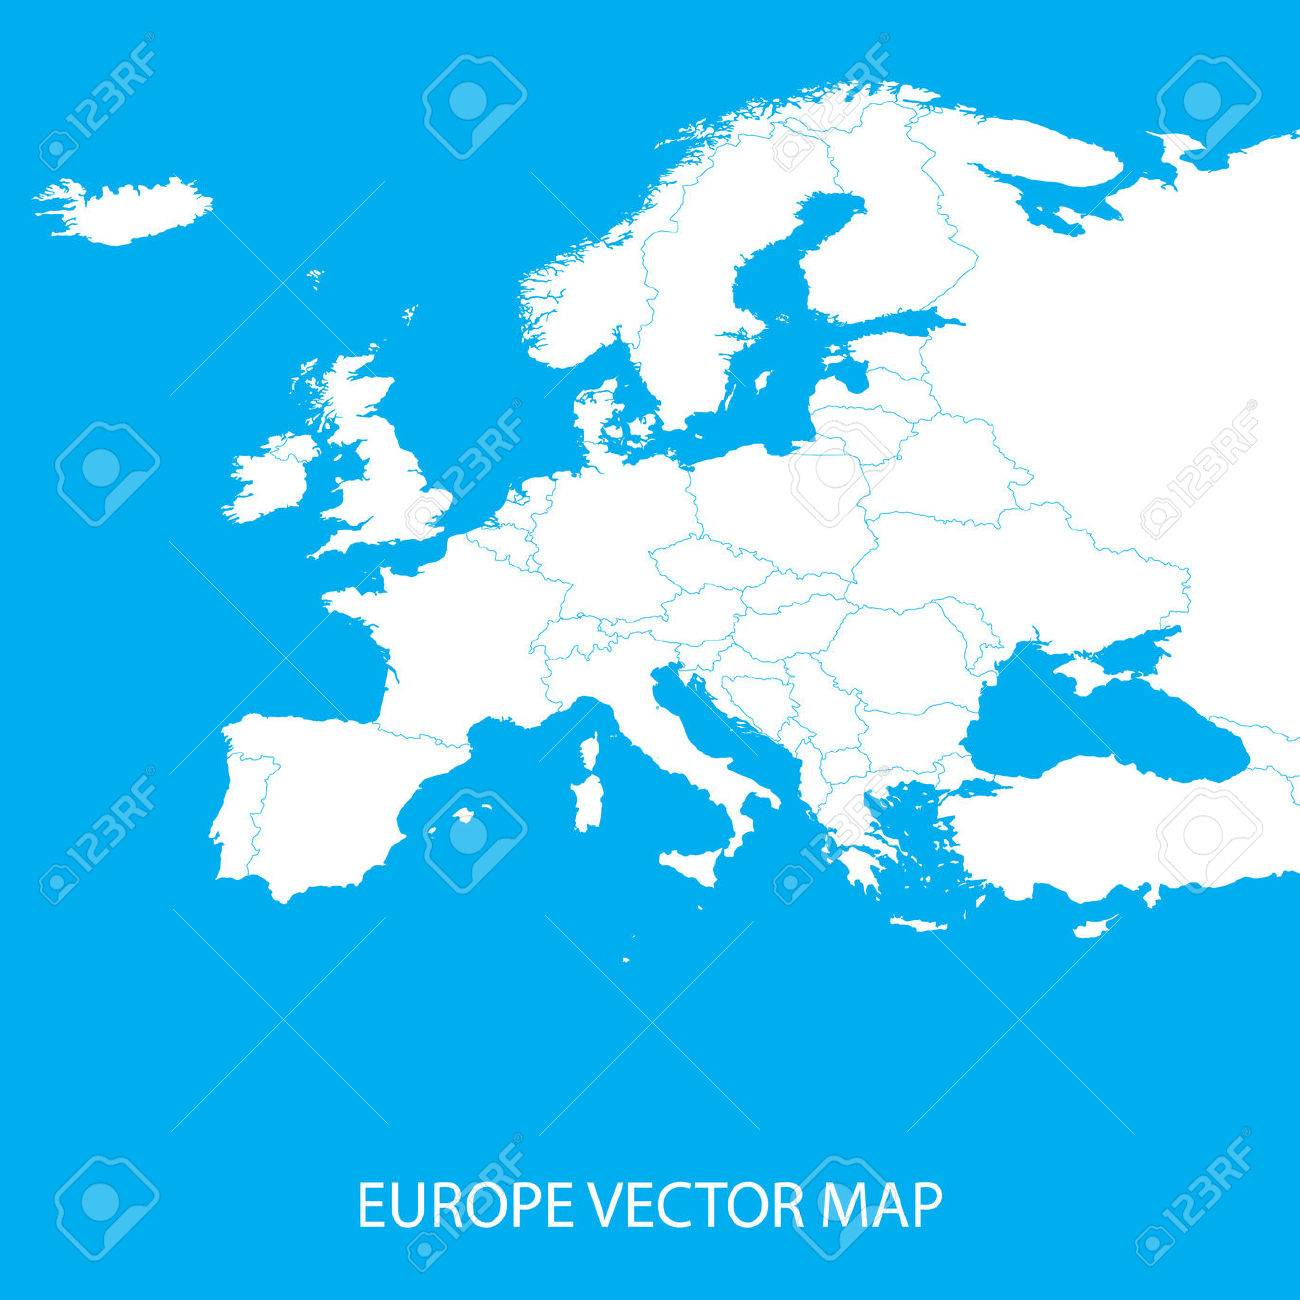 Europe Vector Map - 38787145